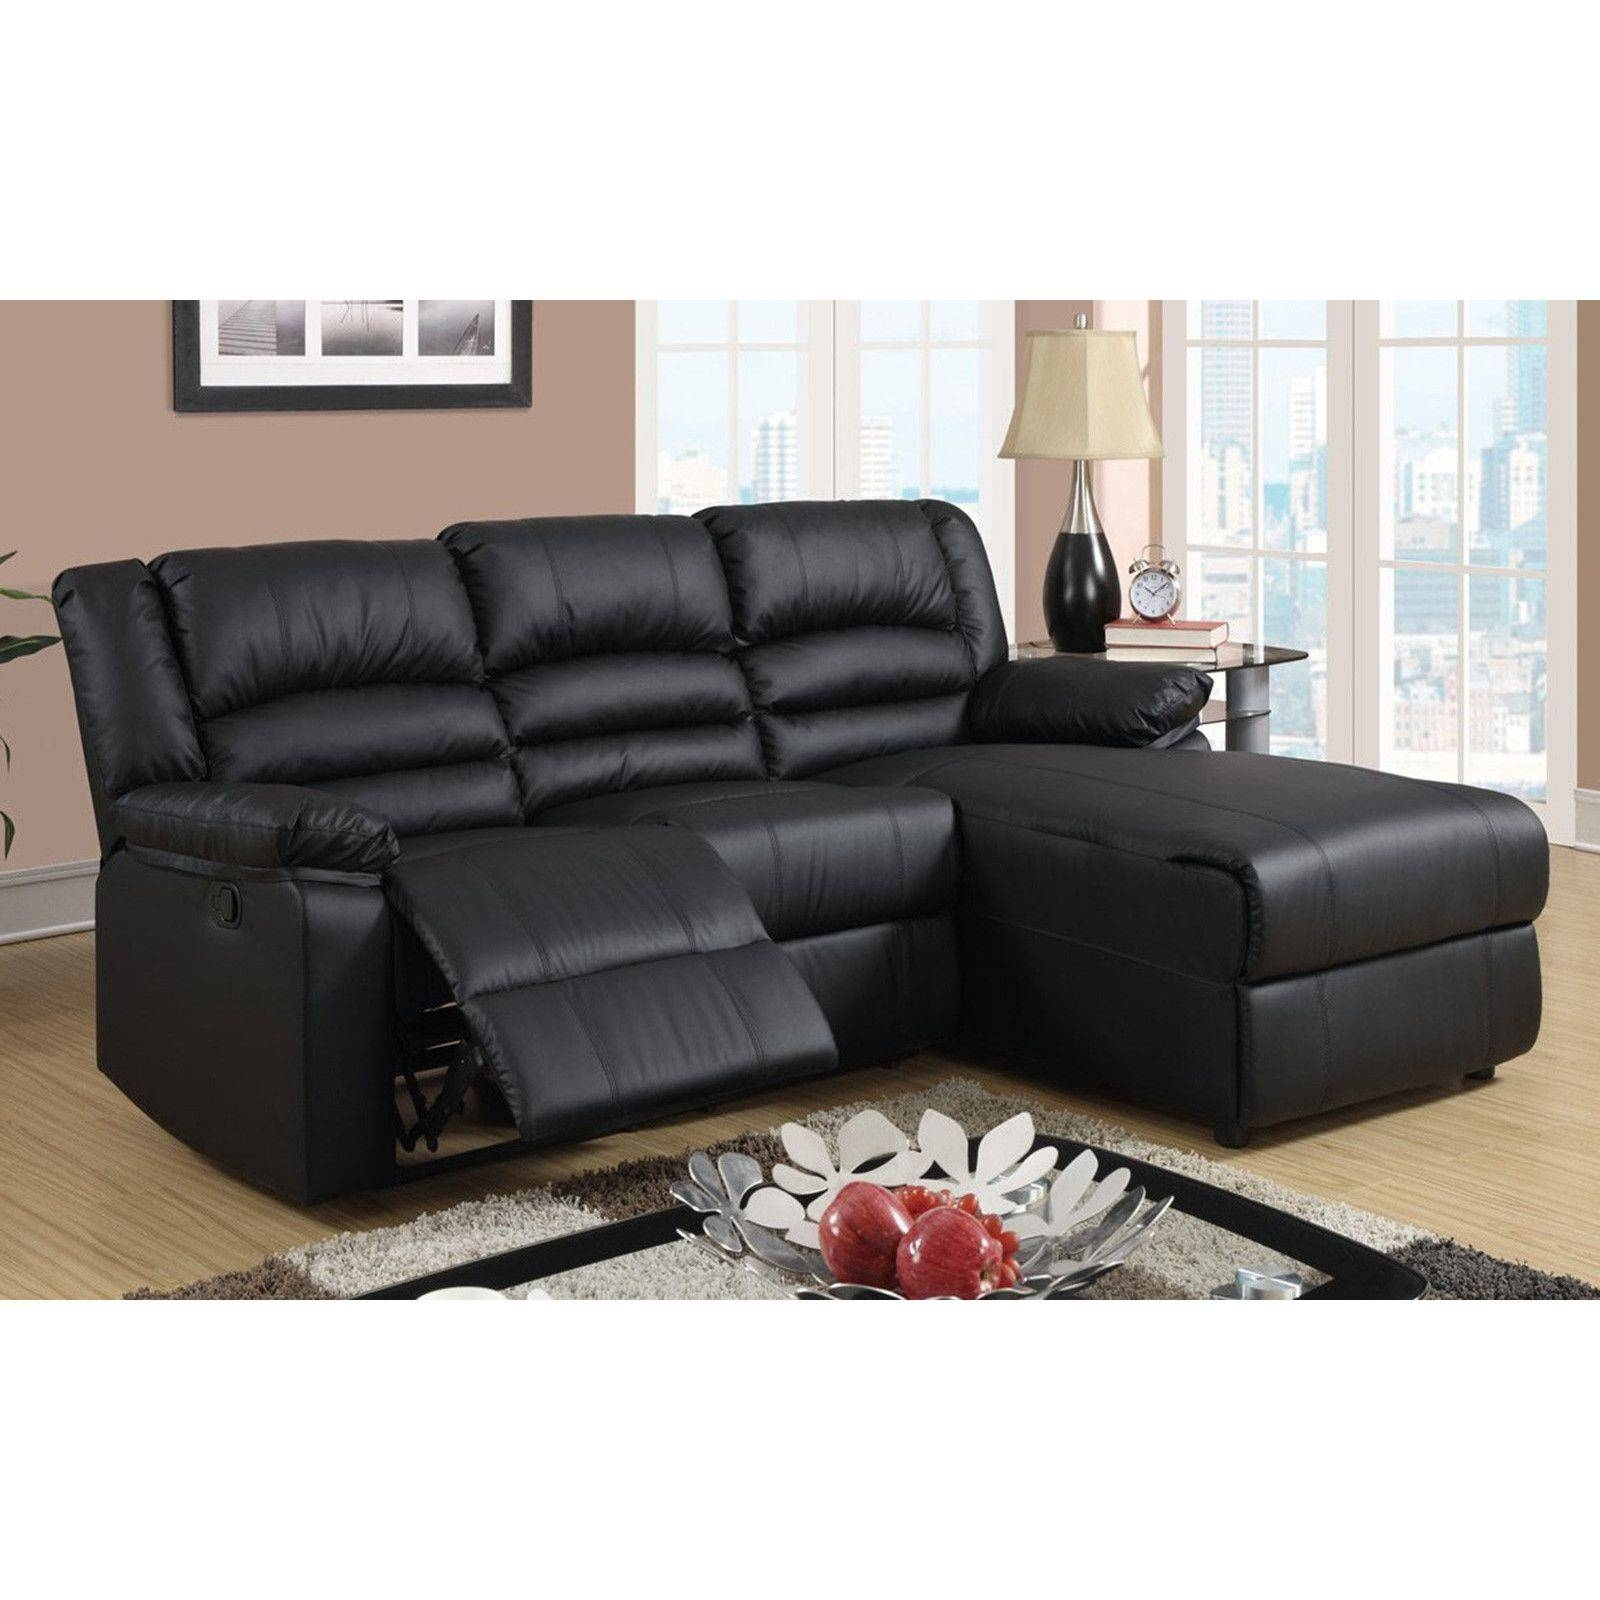 Furniture: Incredible Style Sectional Reclining Sofas For Your inside Curved Sectional Sofa With Recliner (Image 13 of 30)